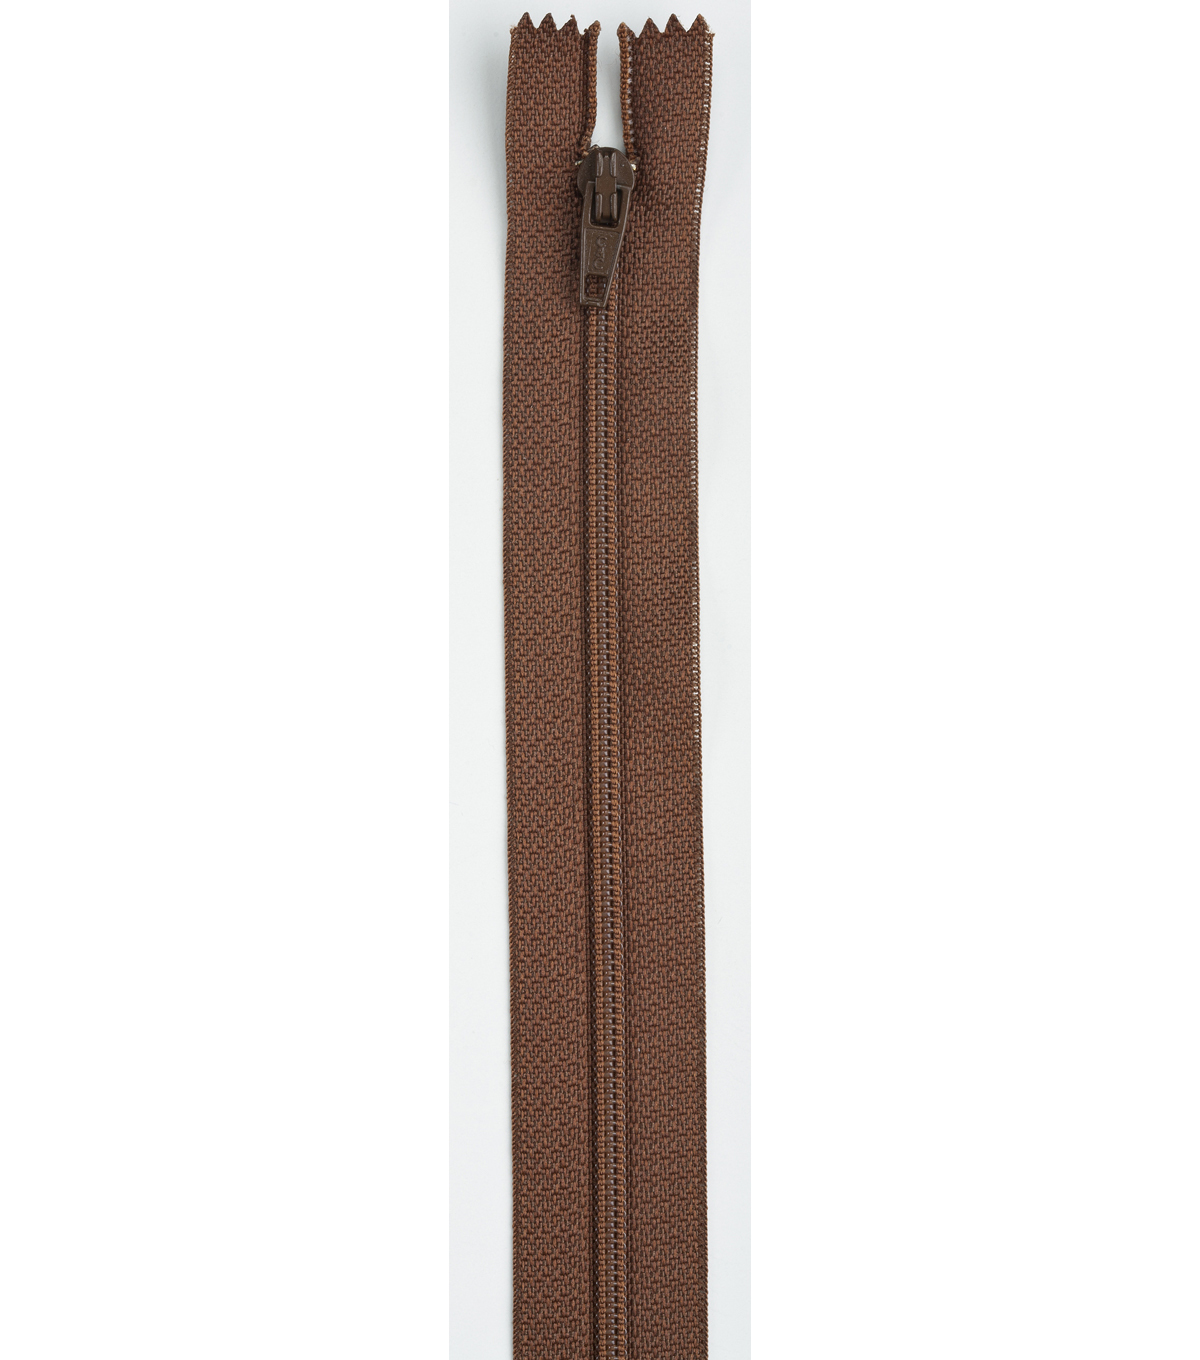 Coats & Clark All-Purpose Plastic Zipper 14\u0022 , London Tan